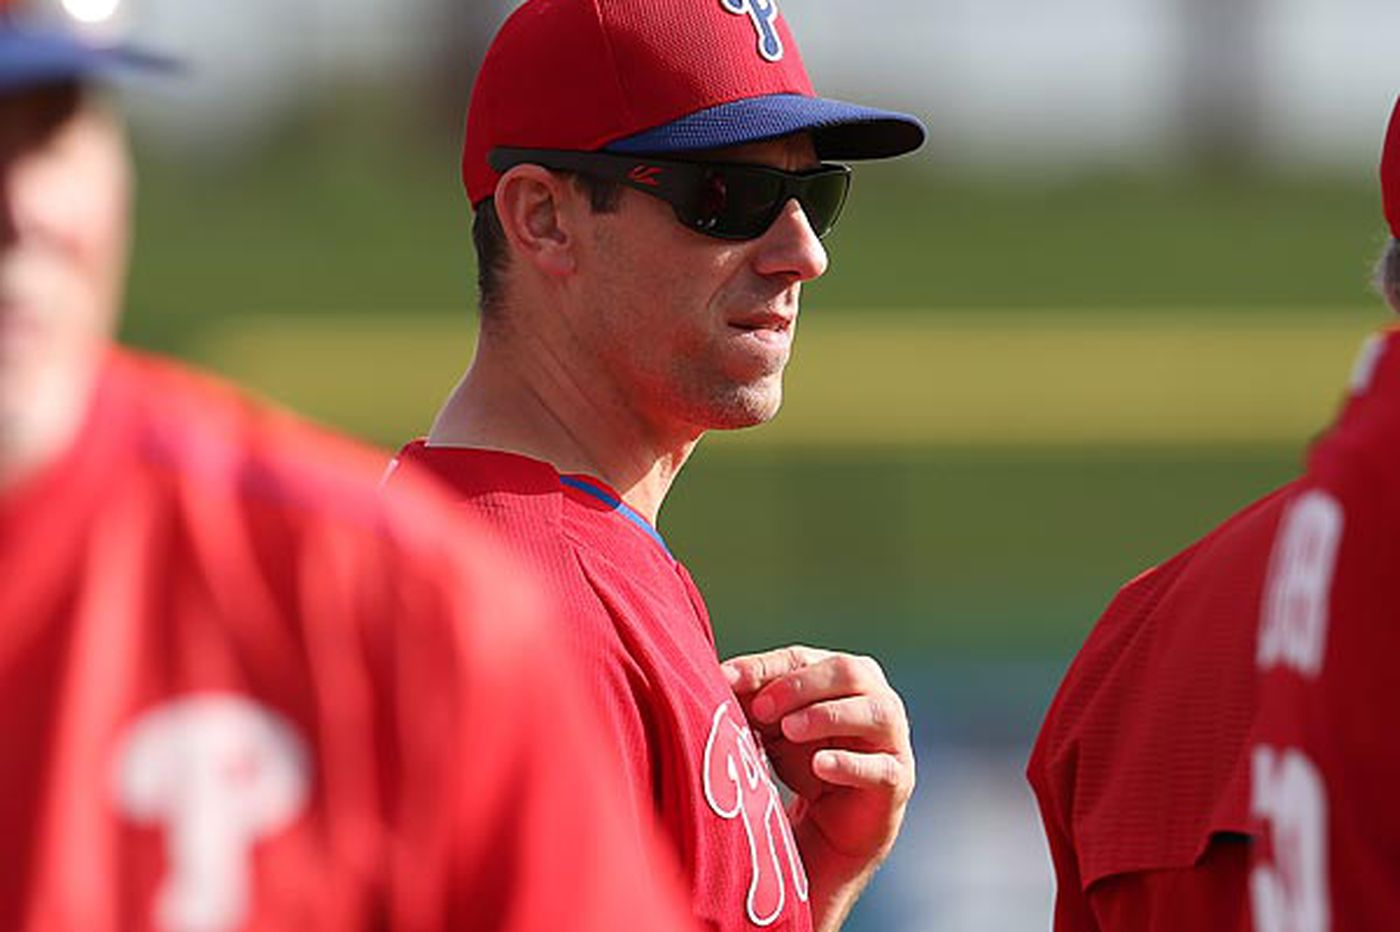 Lee's injury another reminder Phils must move on